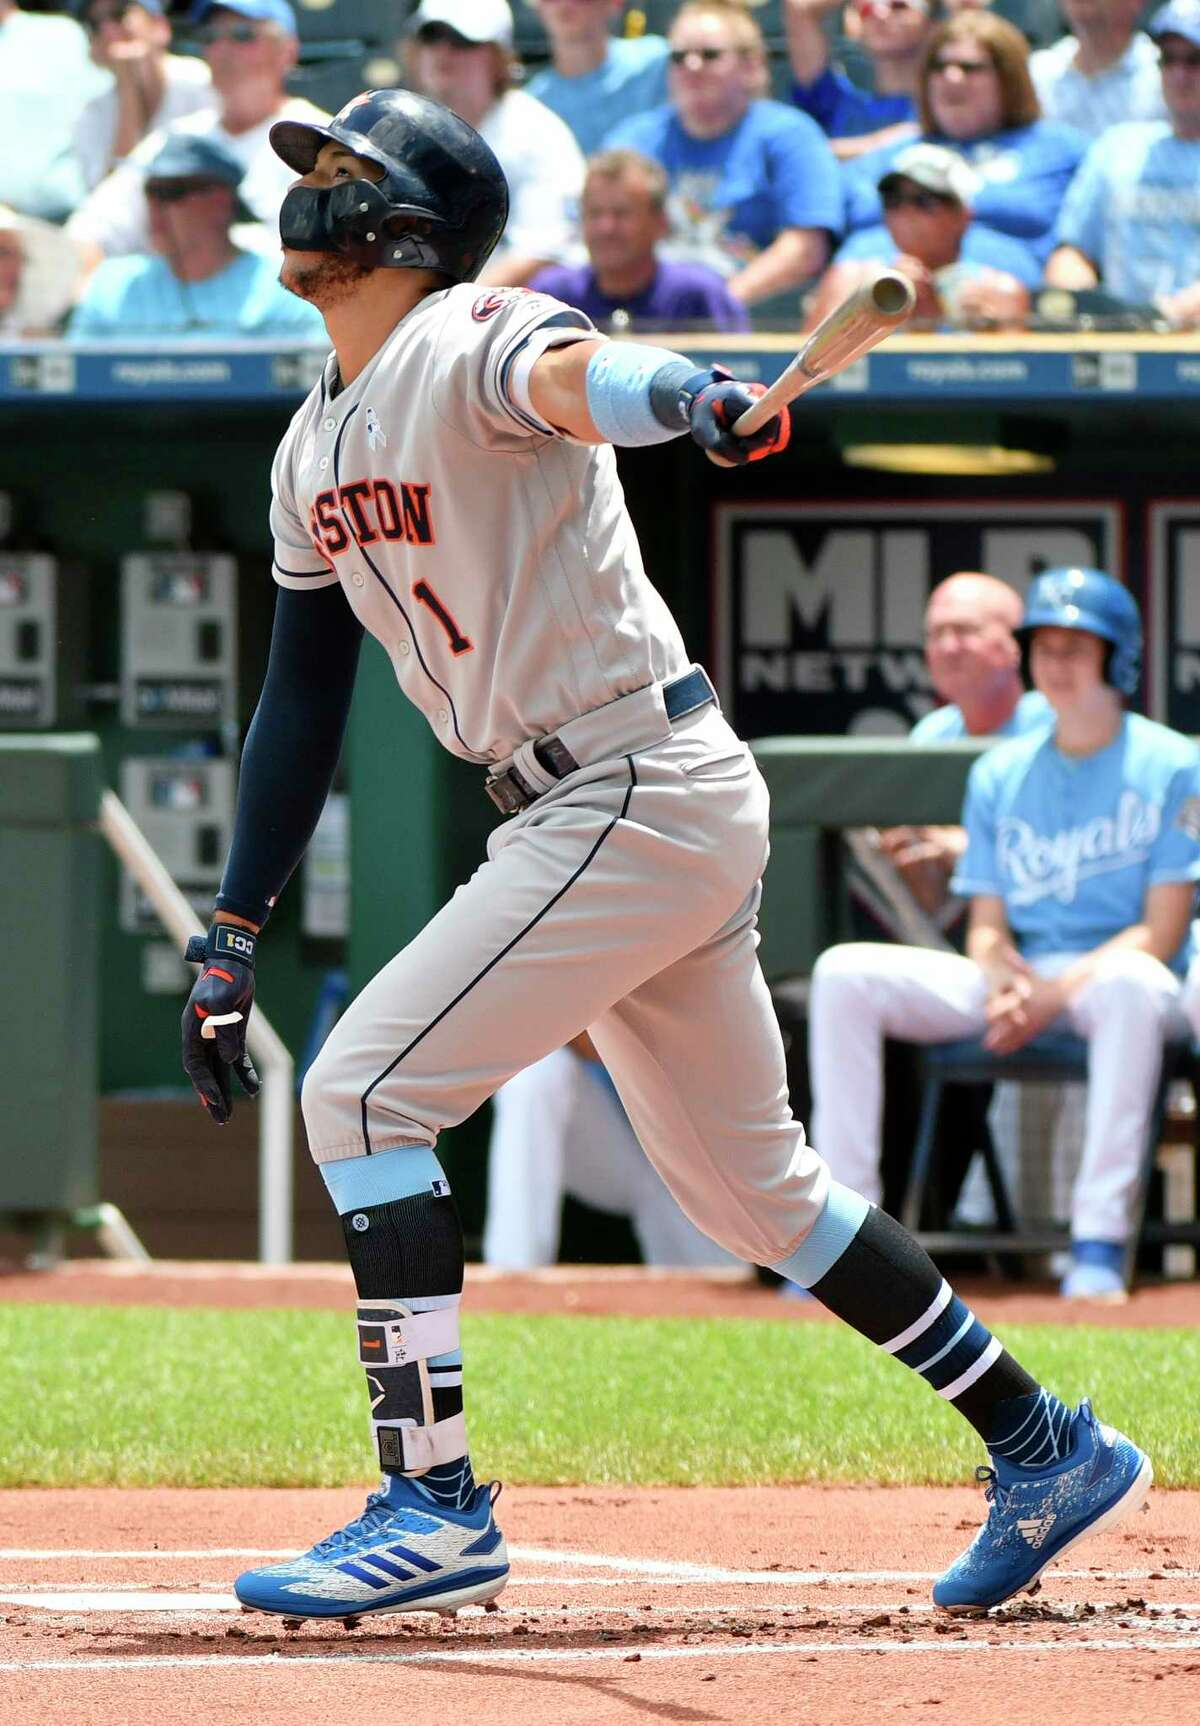 KANSAS CITY, MO - JUNE 17: Carlos Correa #1 of the Houston Astros hits an RBI single in the first inning against the Kansas City Royals at Kauffman Stadium on June 17, 2018 in Kansas City, Missouri.